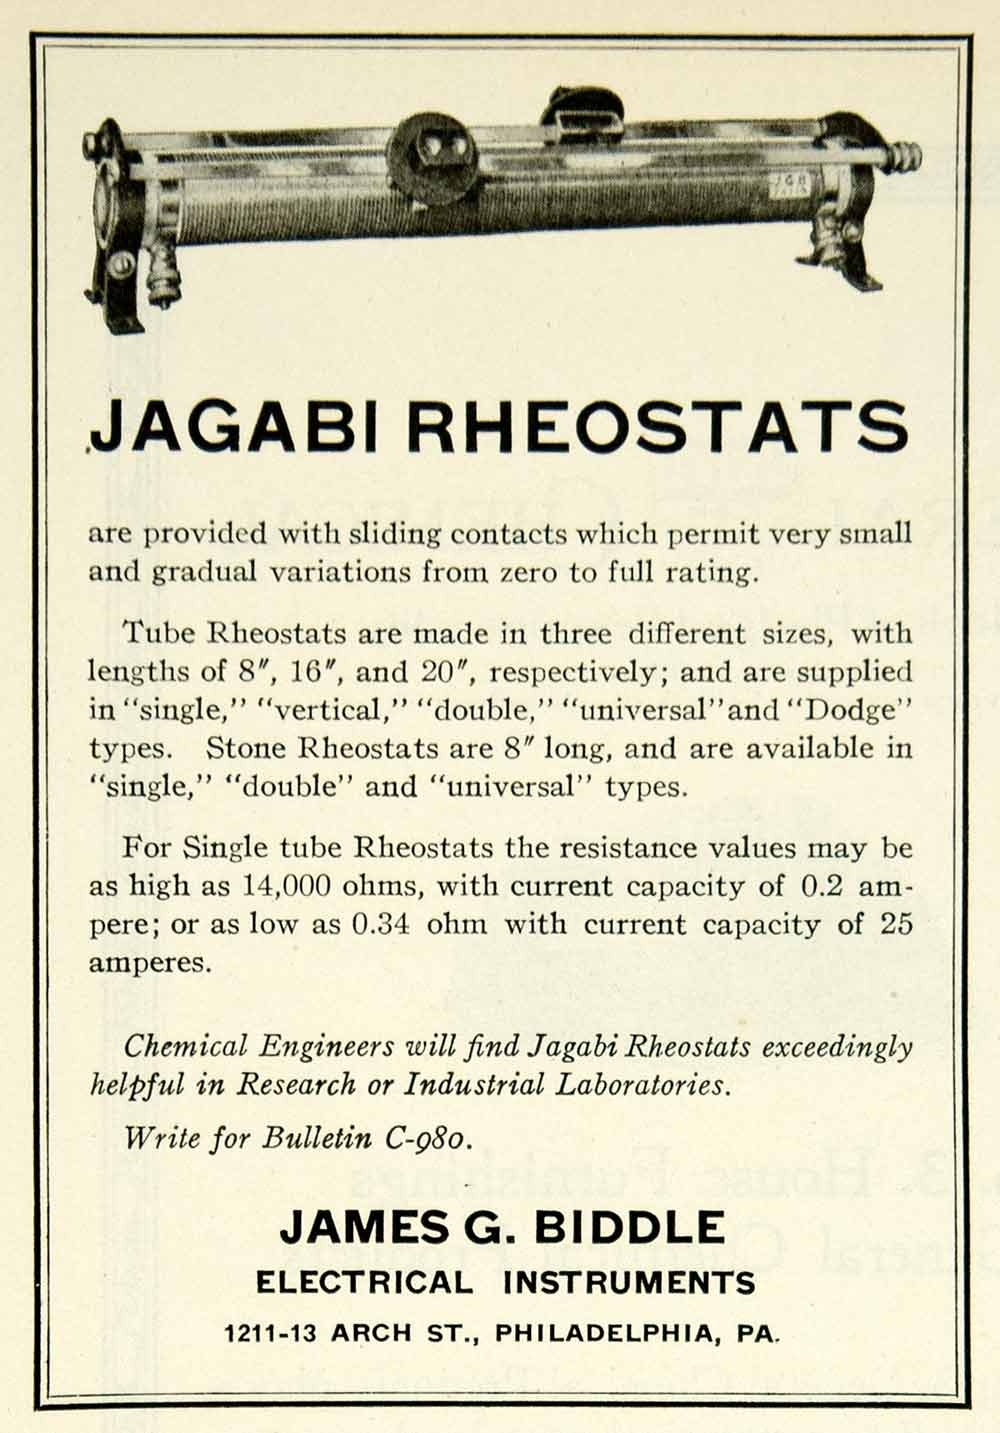 1922 Ad James G Biddle Electrical Instruments Jagabi Tube Rheostats Science IEC2